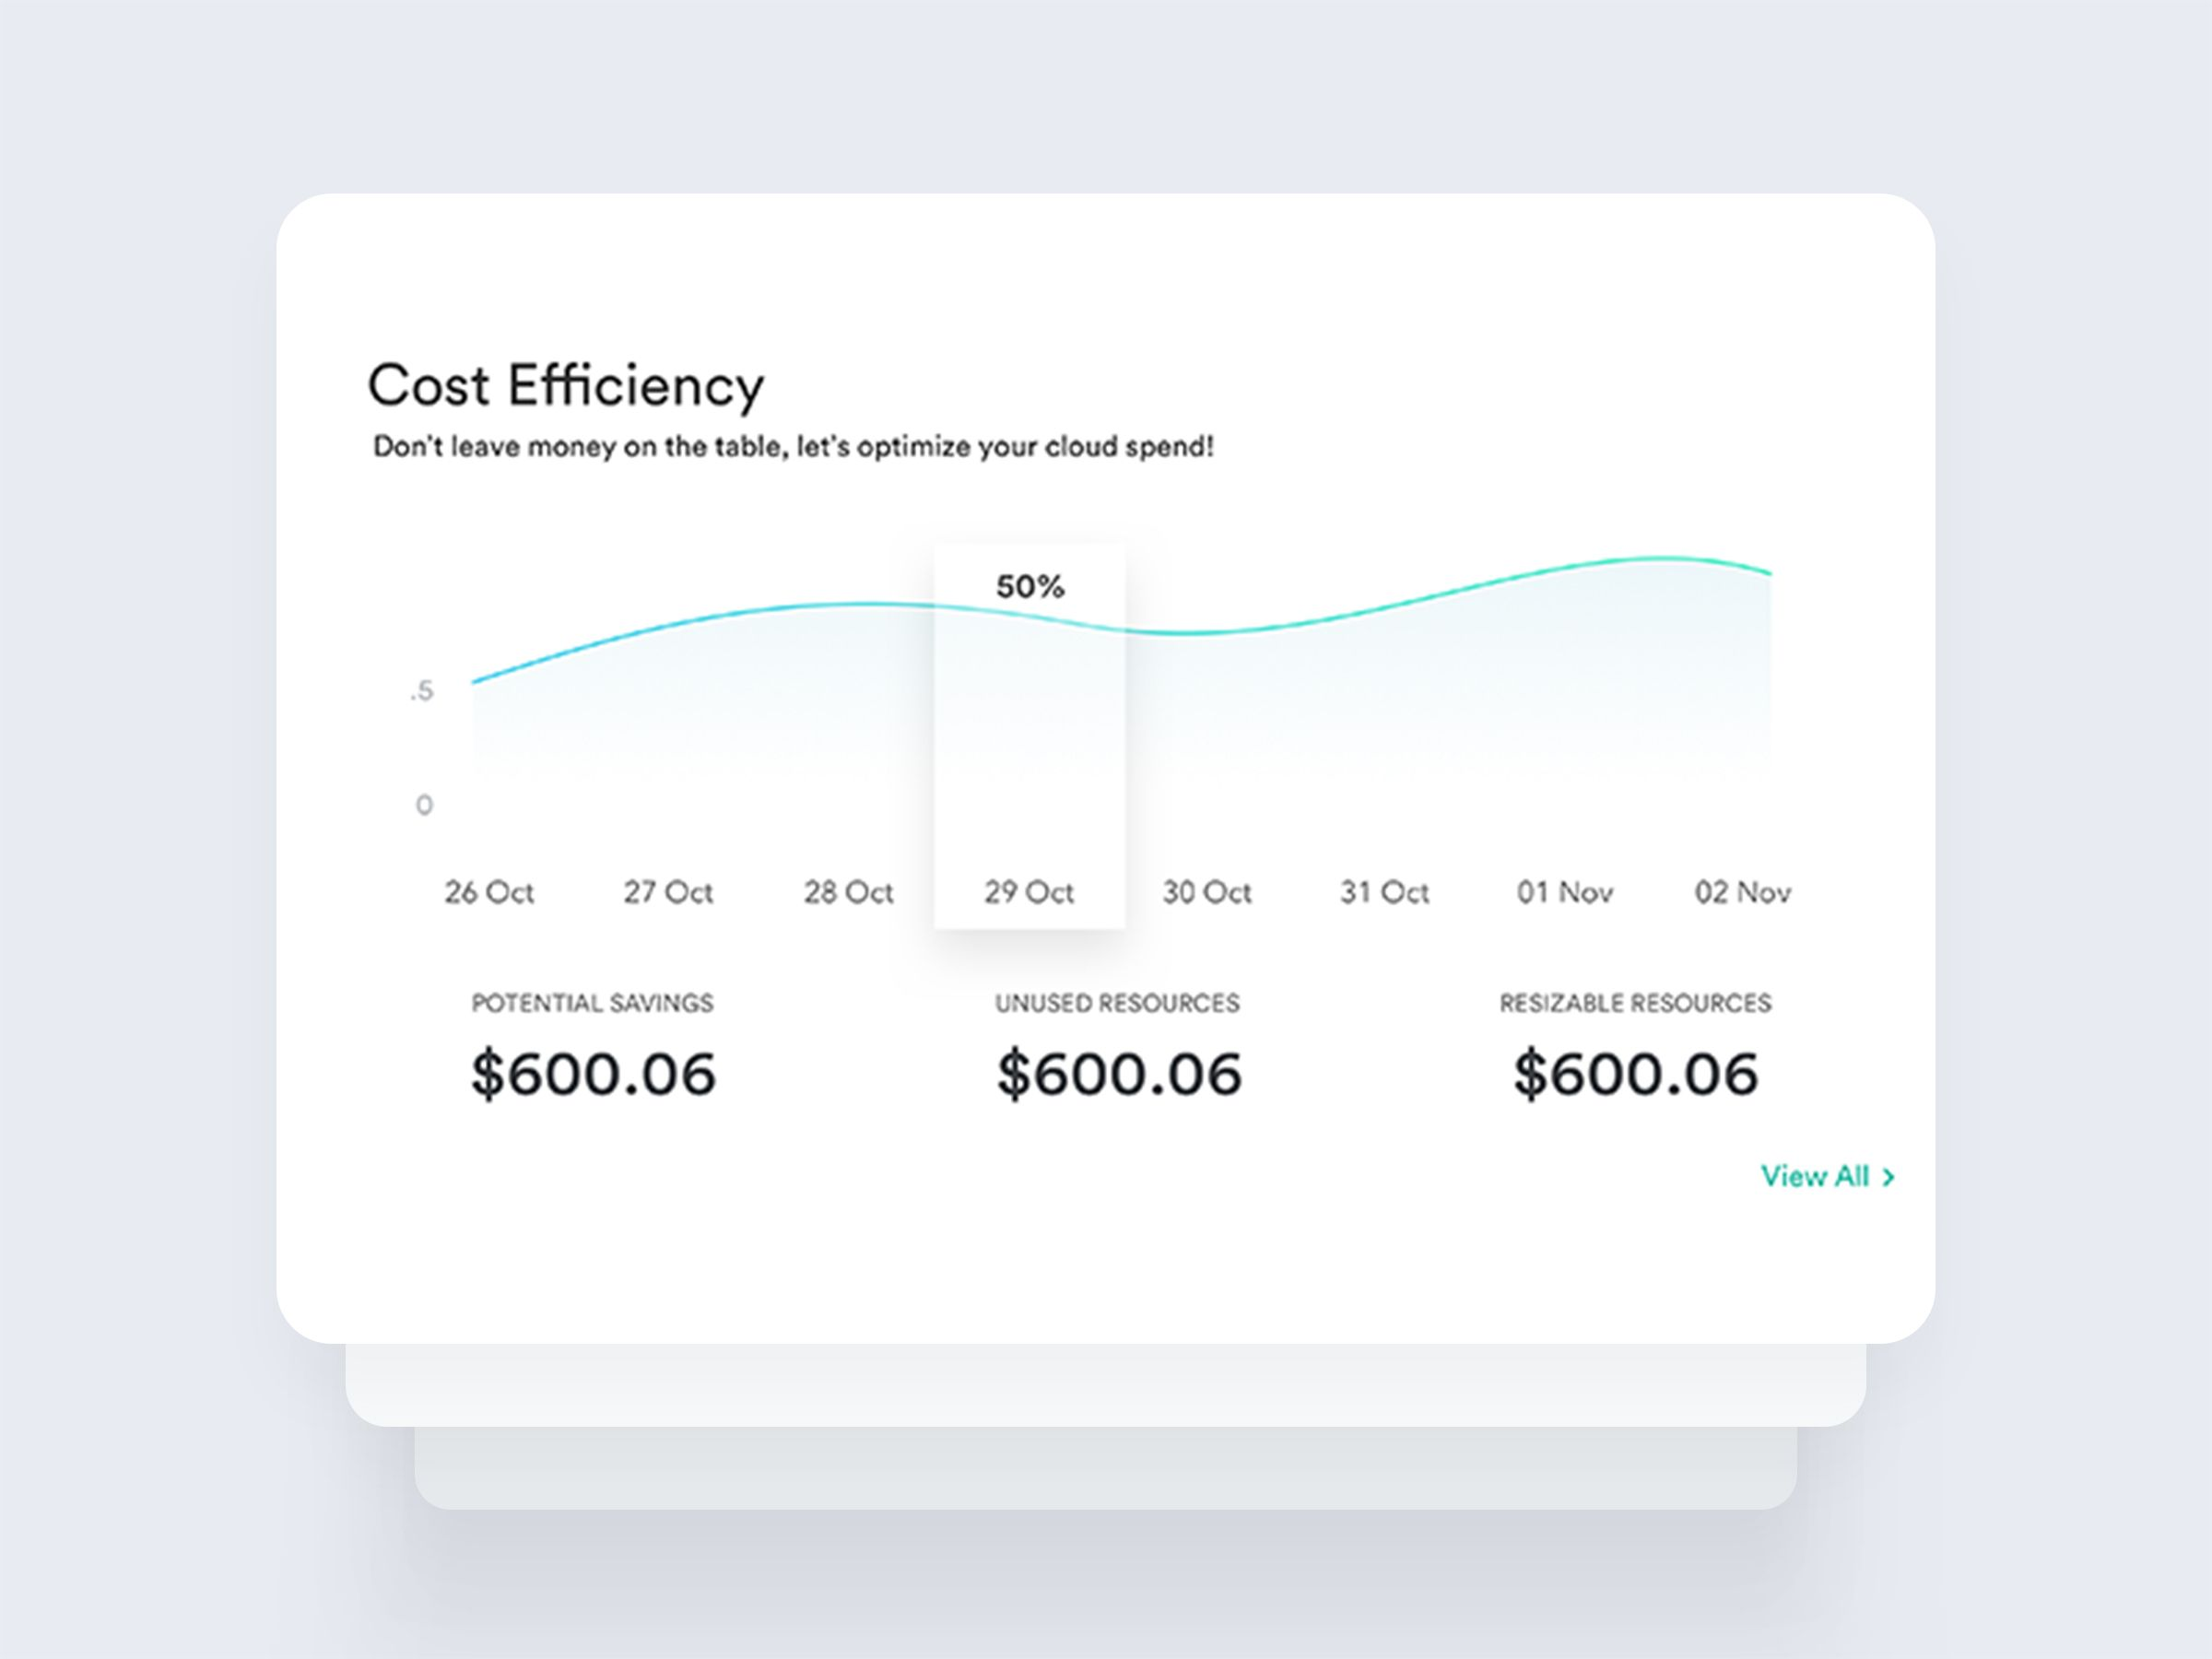 Cost Efficiency